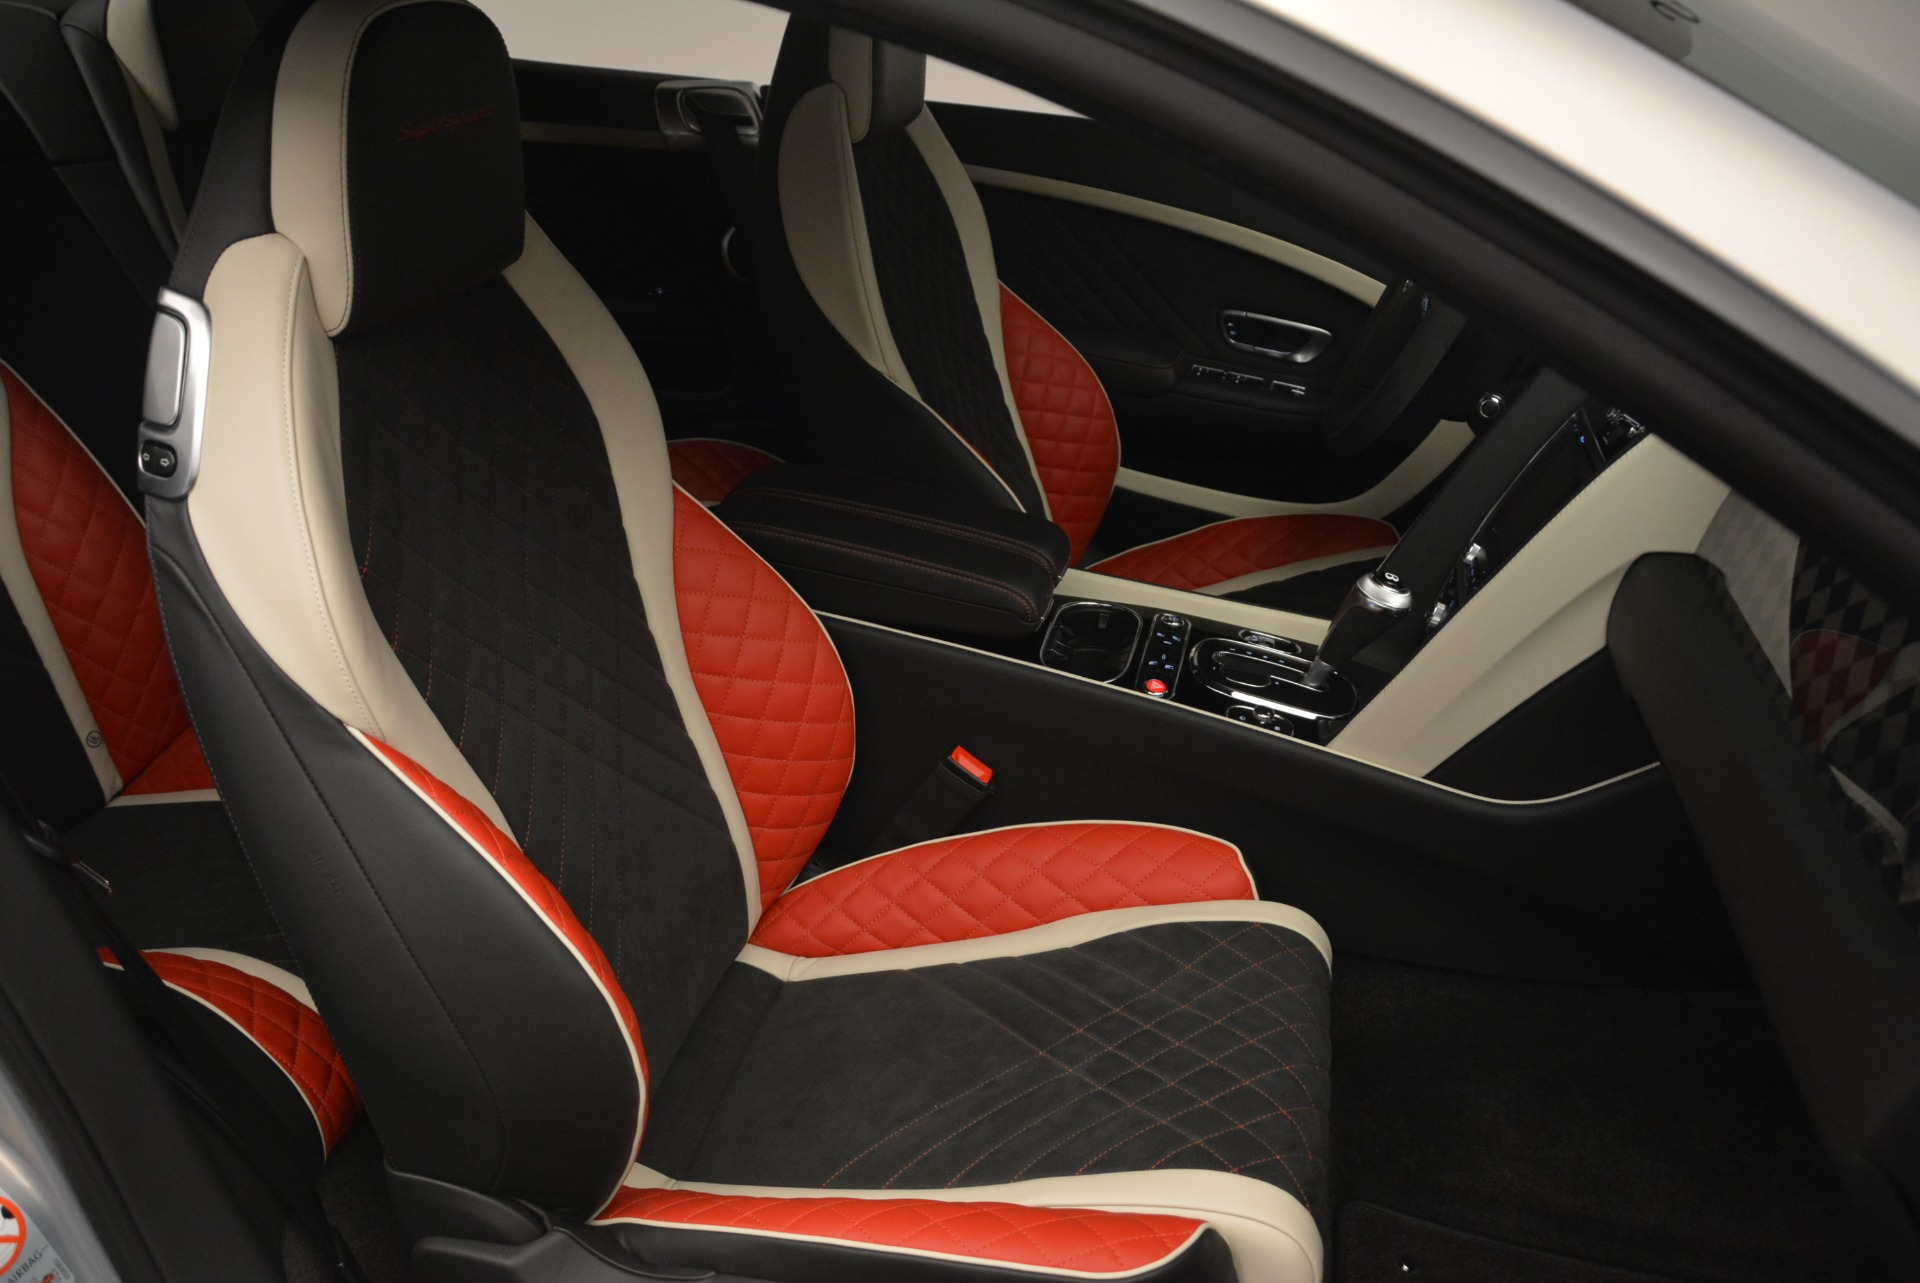 Used 2017 Bentley Continental GT Supersports For Sale In Westport, CT 2206_p28